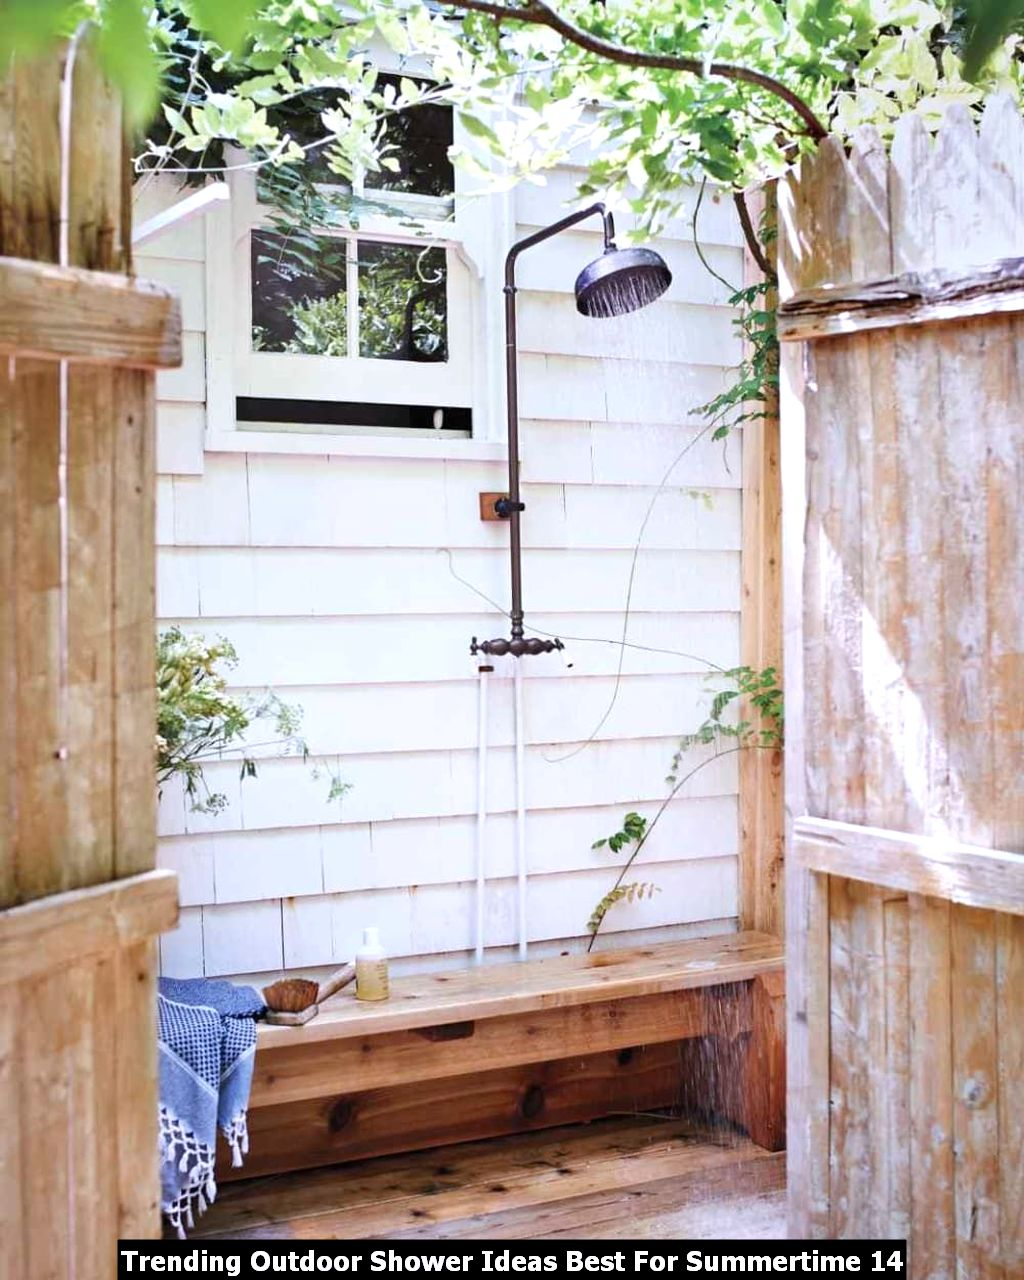 Trending Outdoor Shower Ideas Best For Summertime 14